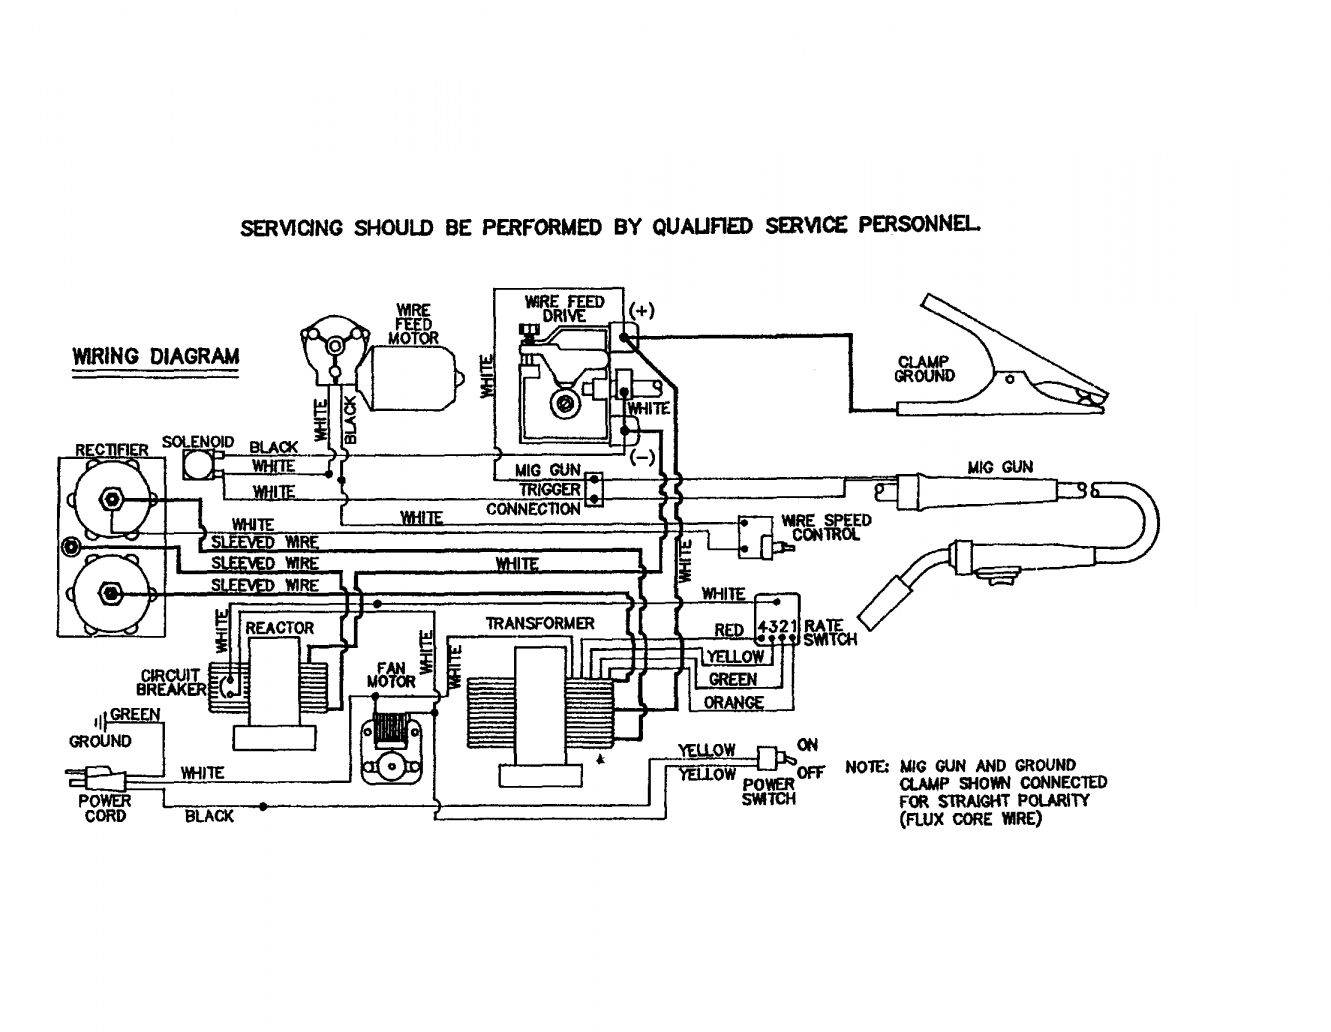 12+ Chicago Electric Arc Welder 140 Wiring Diagram | Diagram, Welders, Arc  weldersPinterest